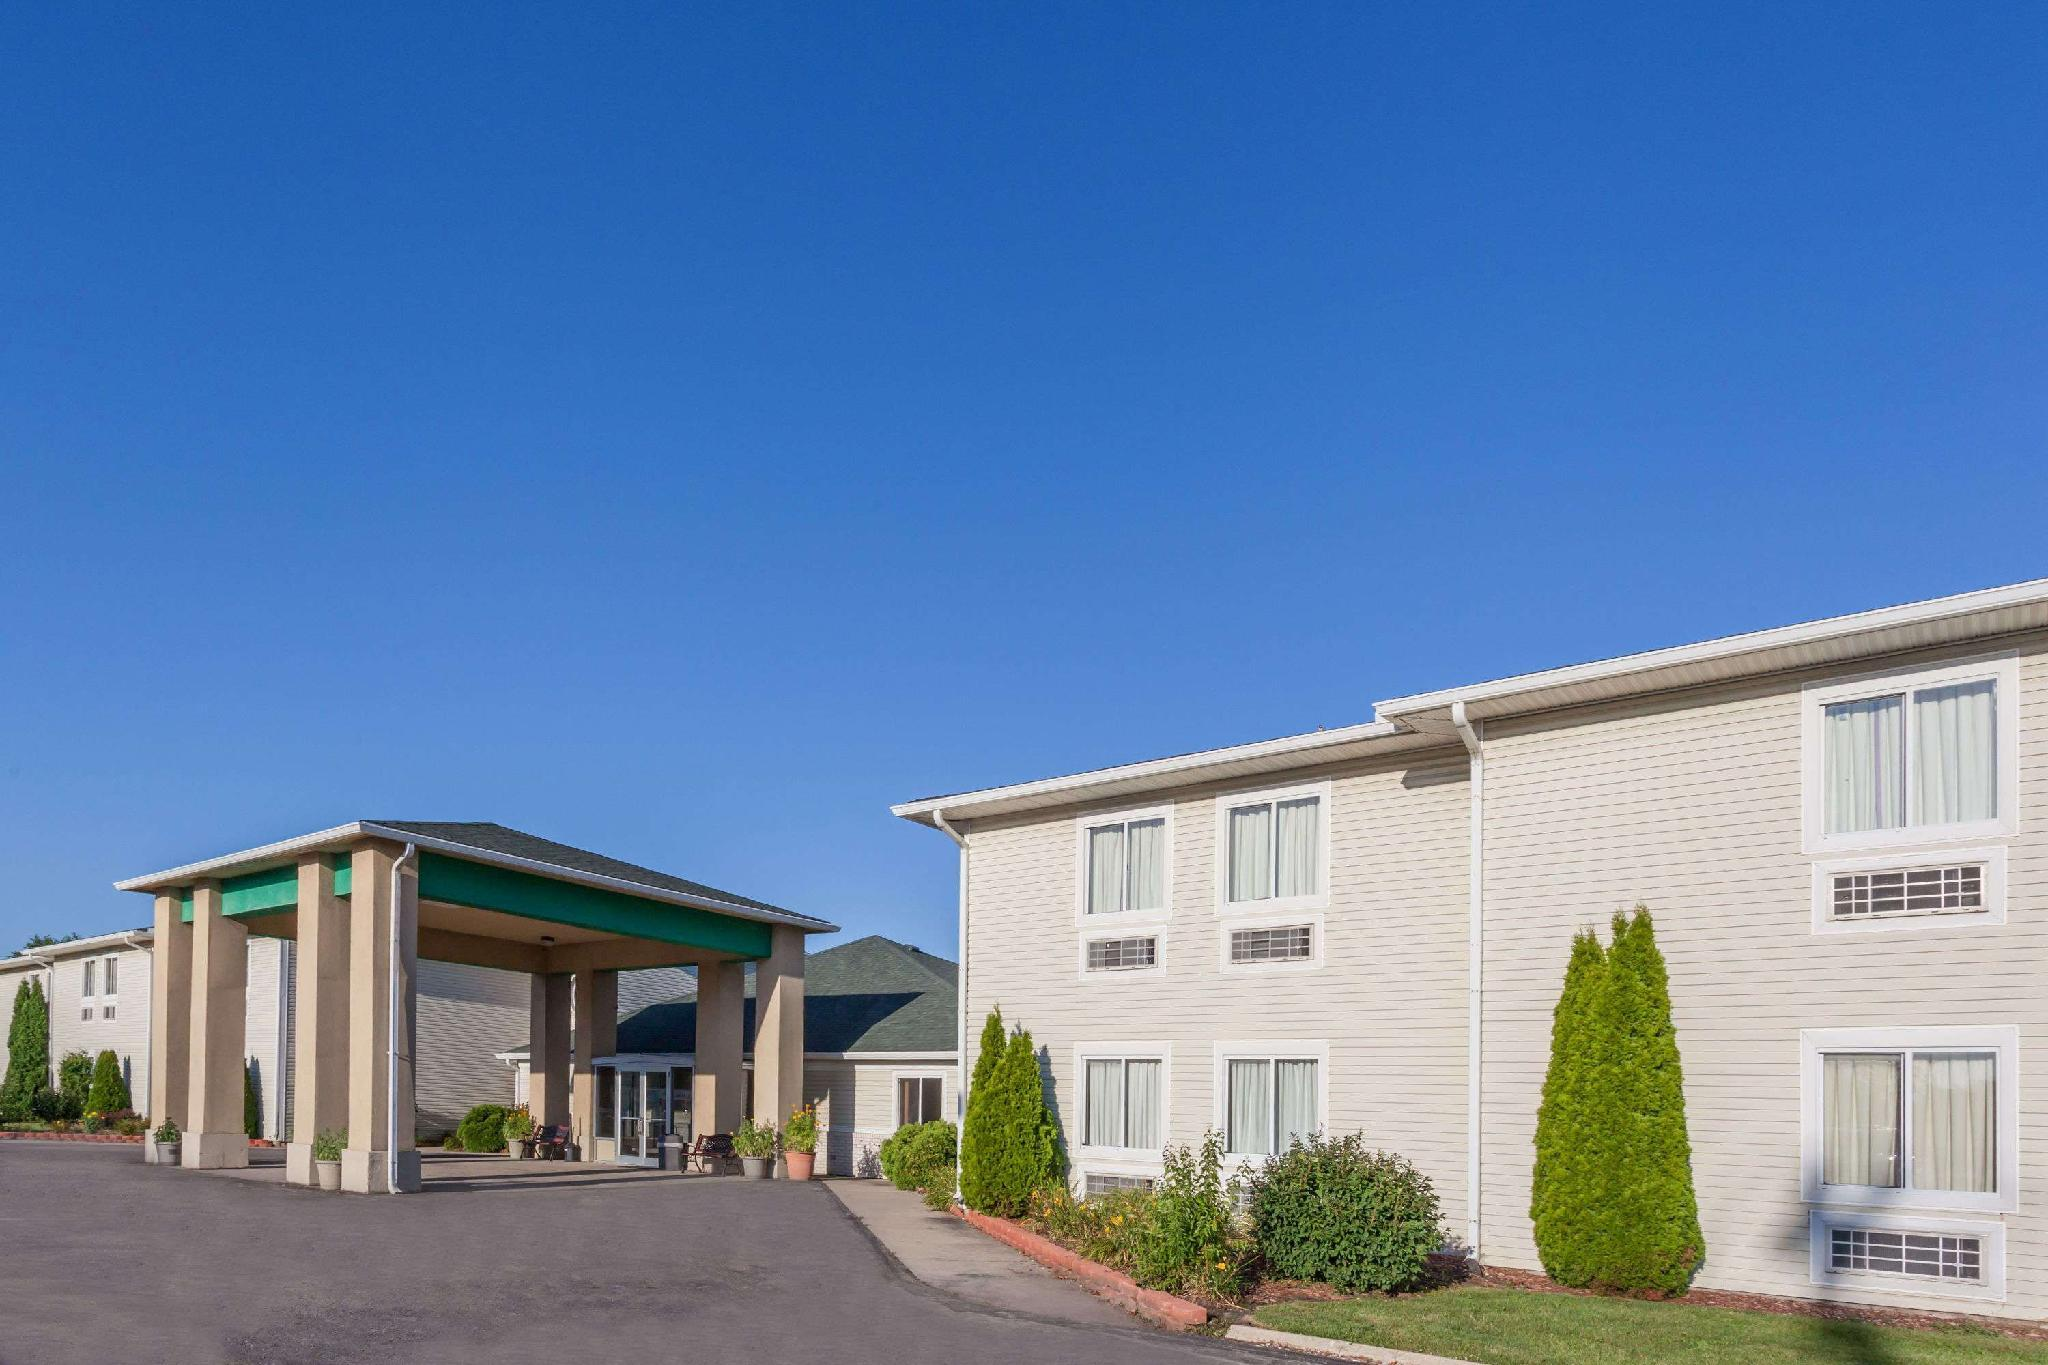 Days Inn And Suites By Wyndham Dundee